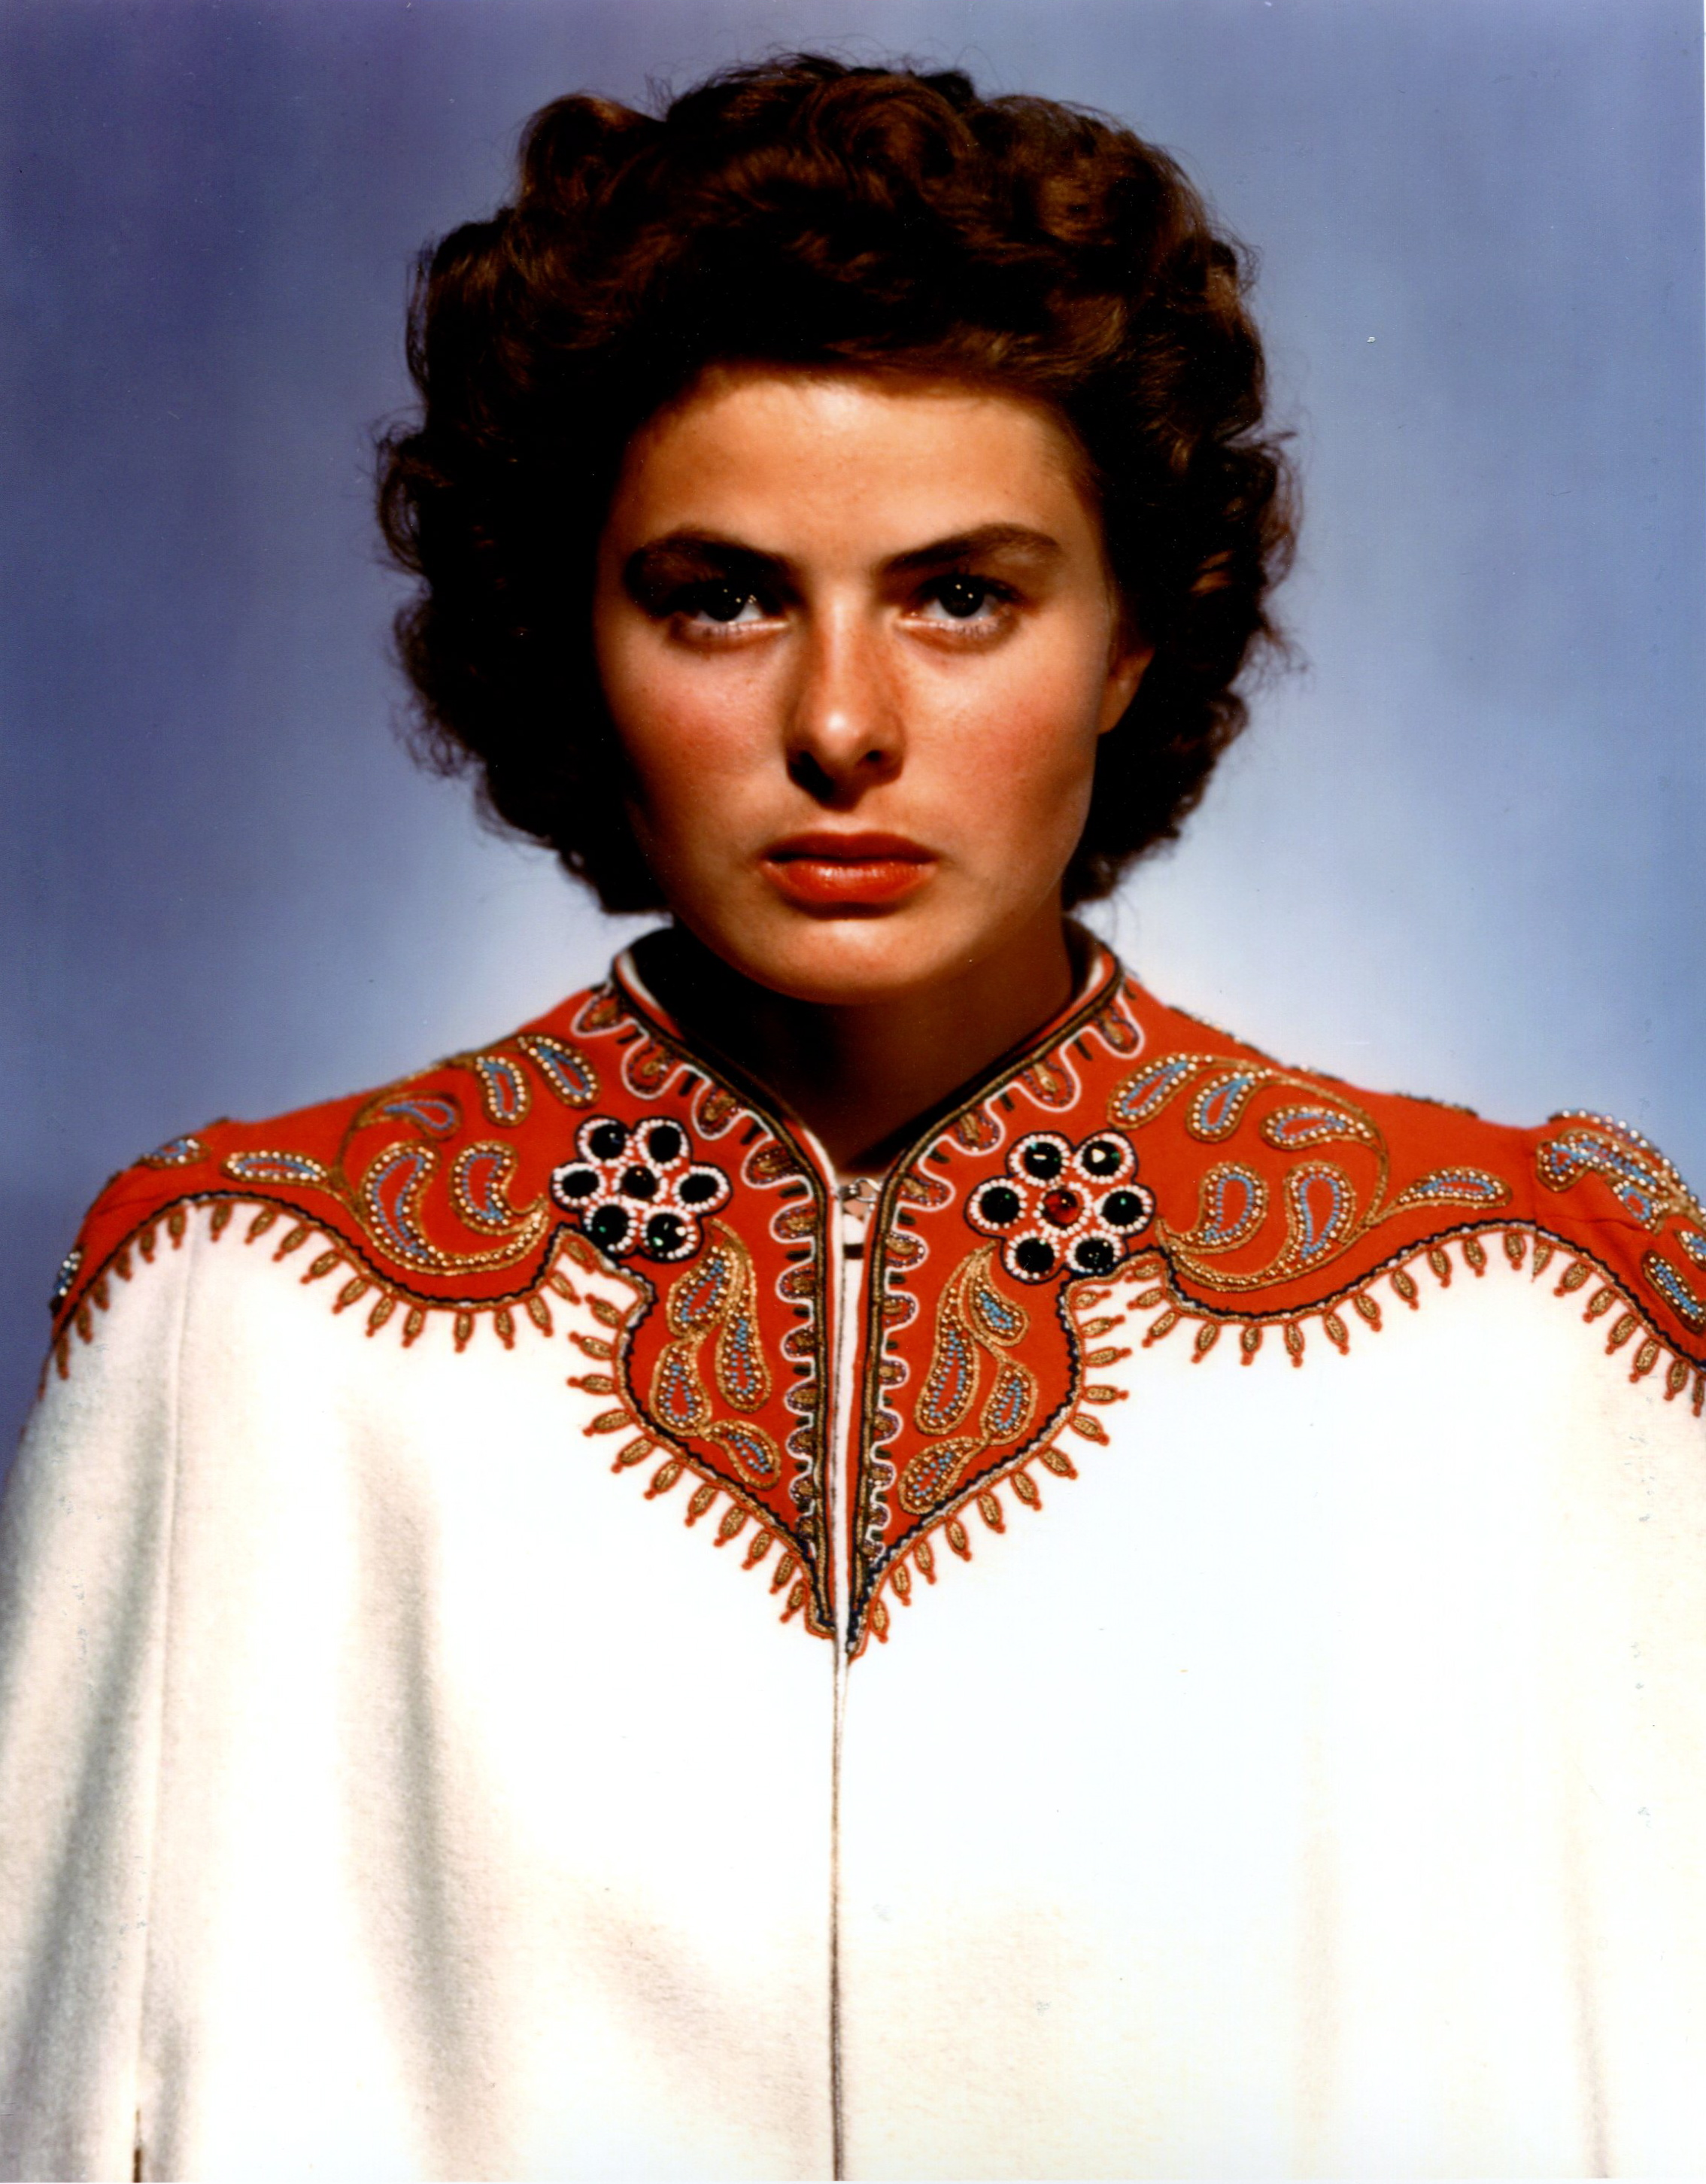 Ingrid Bergman for Spellbound by Ned Scott